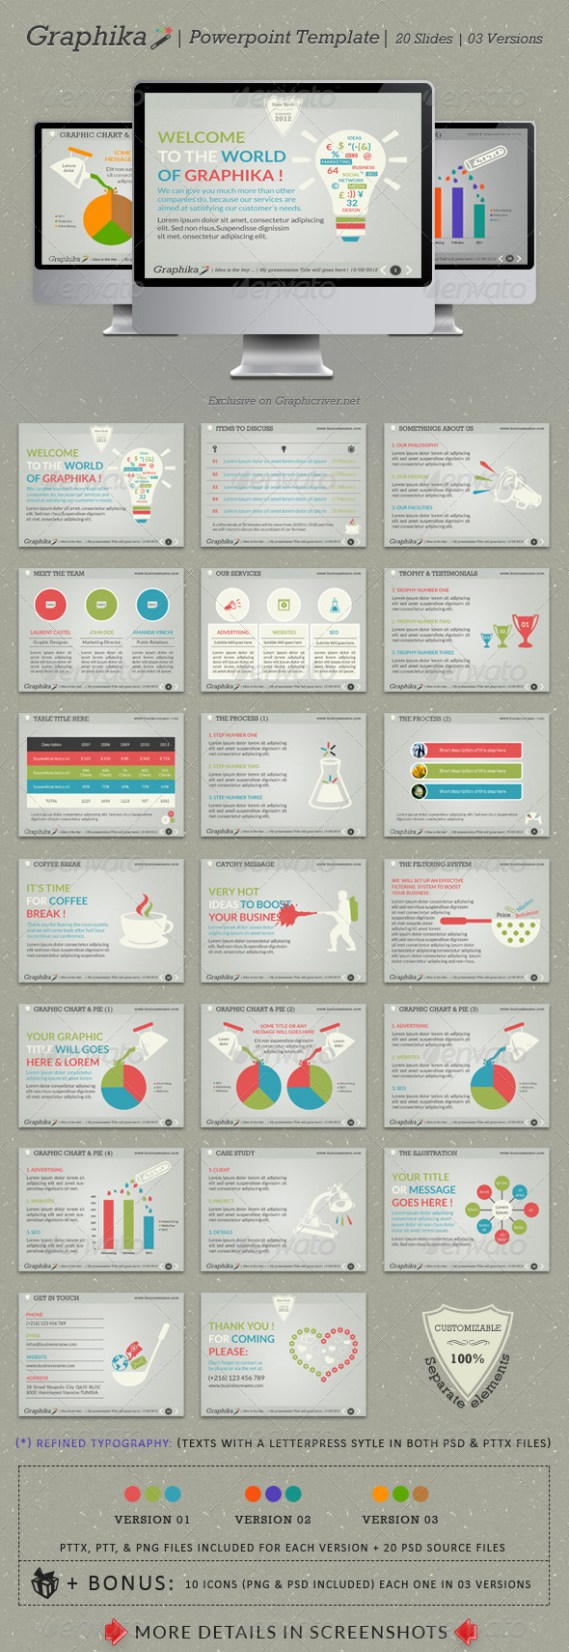 Graphika PowerPoint Template